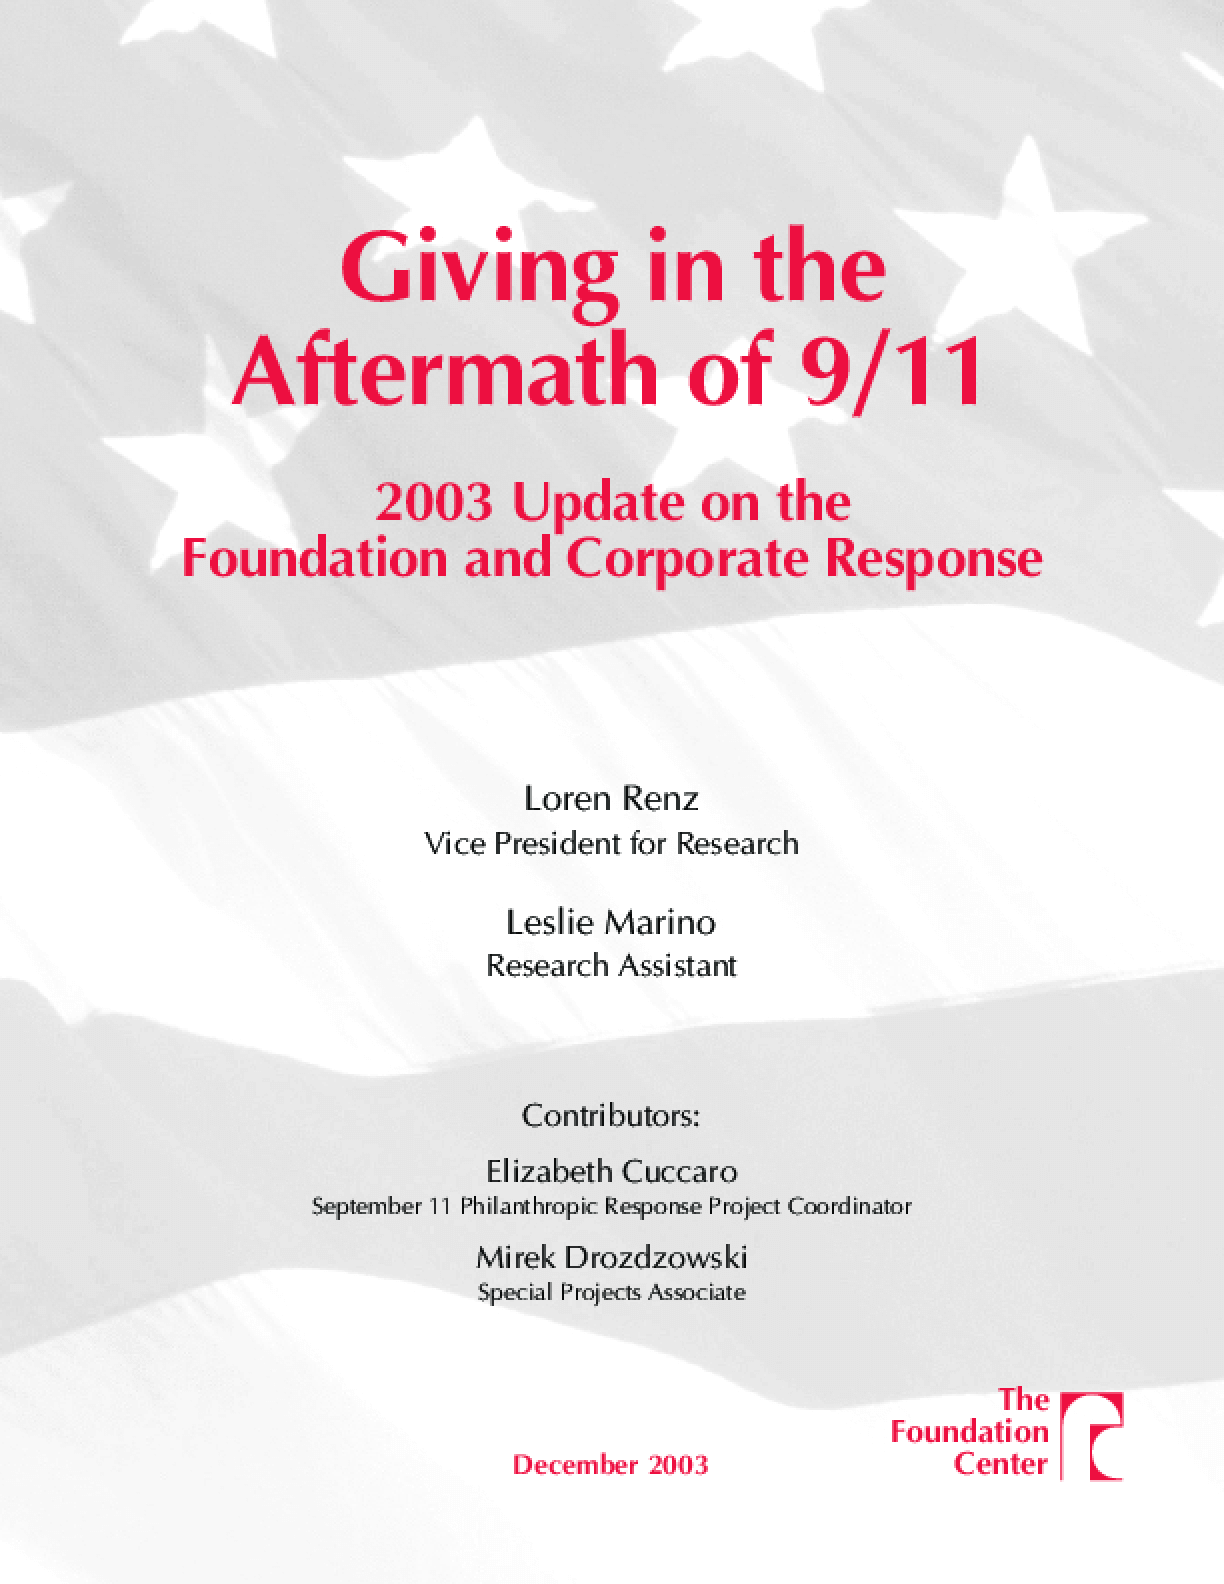 Giving in the Aftermath of 9/11: 2003 Update on the Foundation and Corporate Response